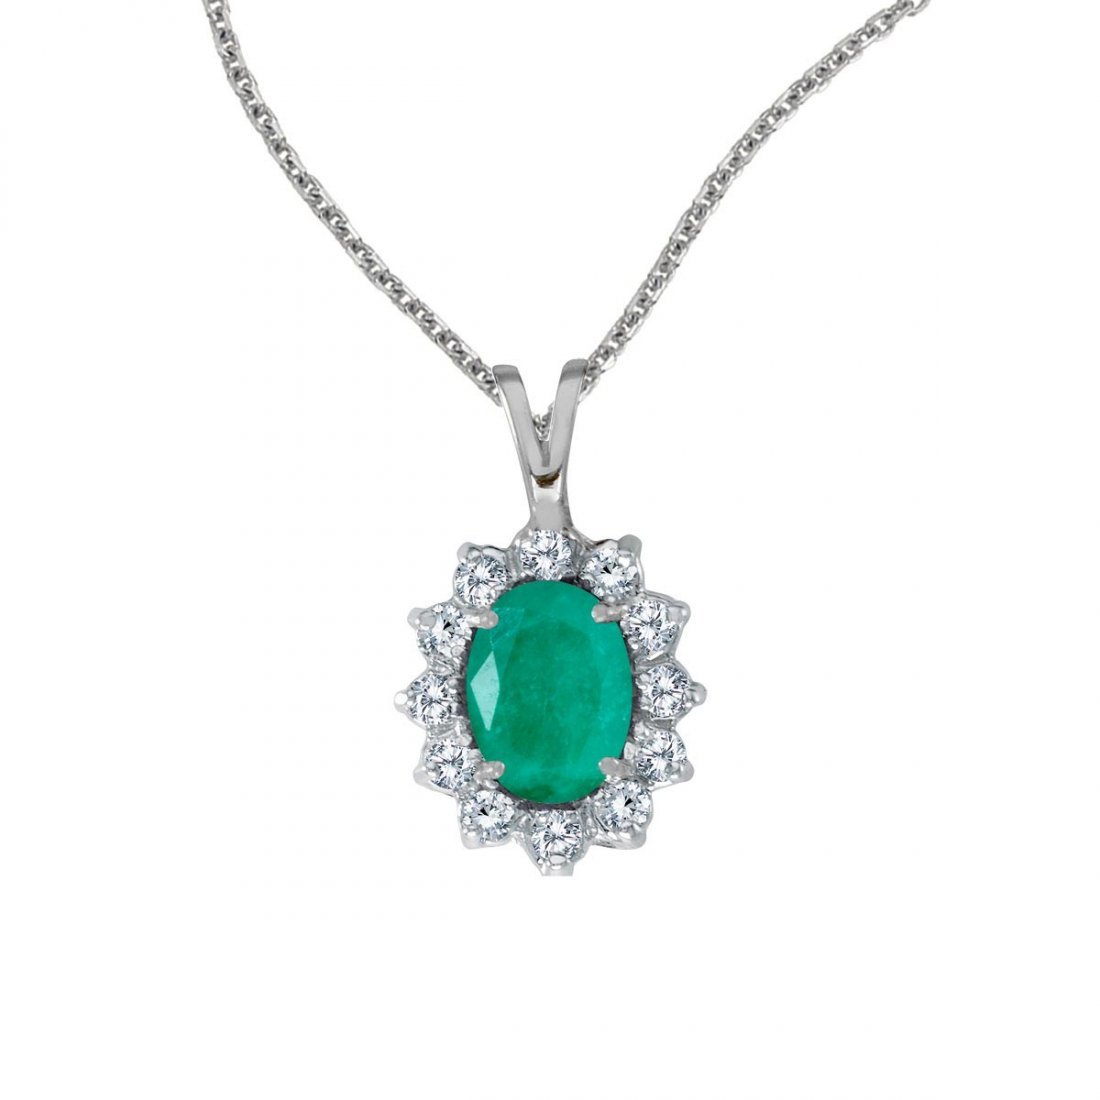 Certified 14k White Gold Oval Emerald Pendant with Diam